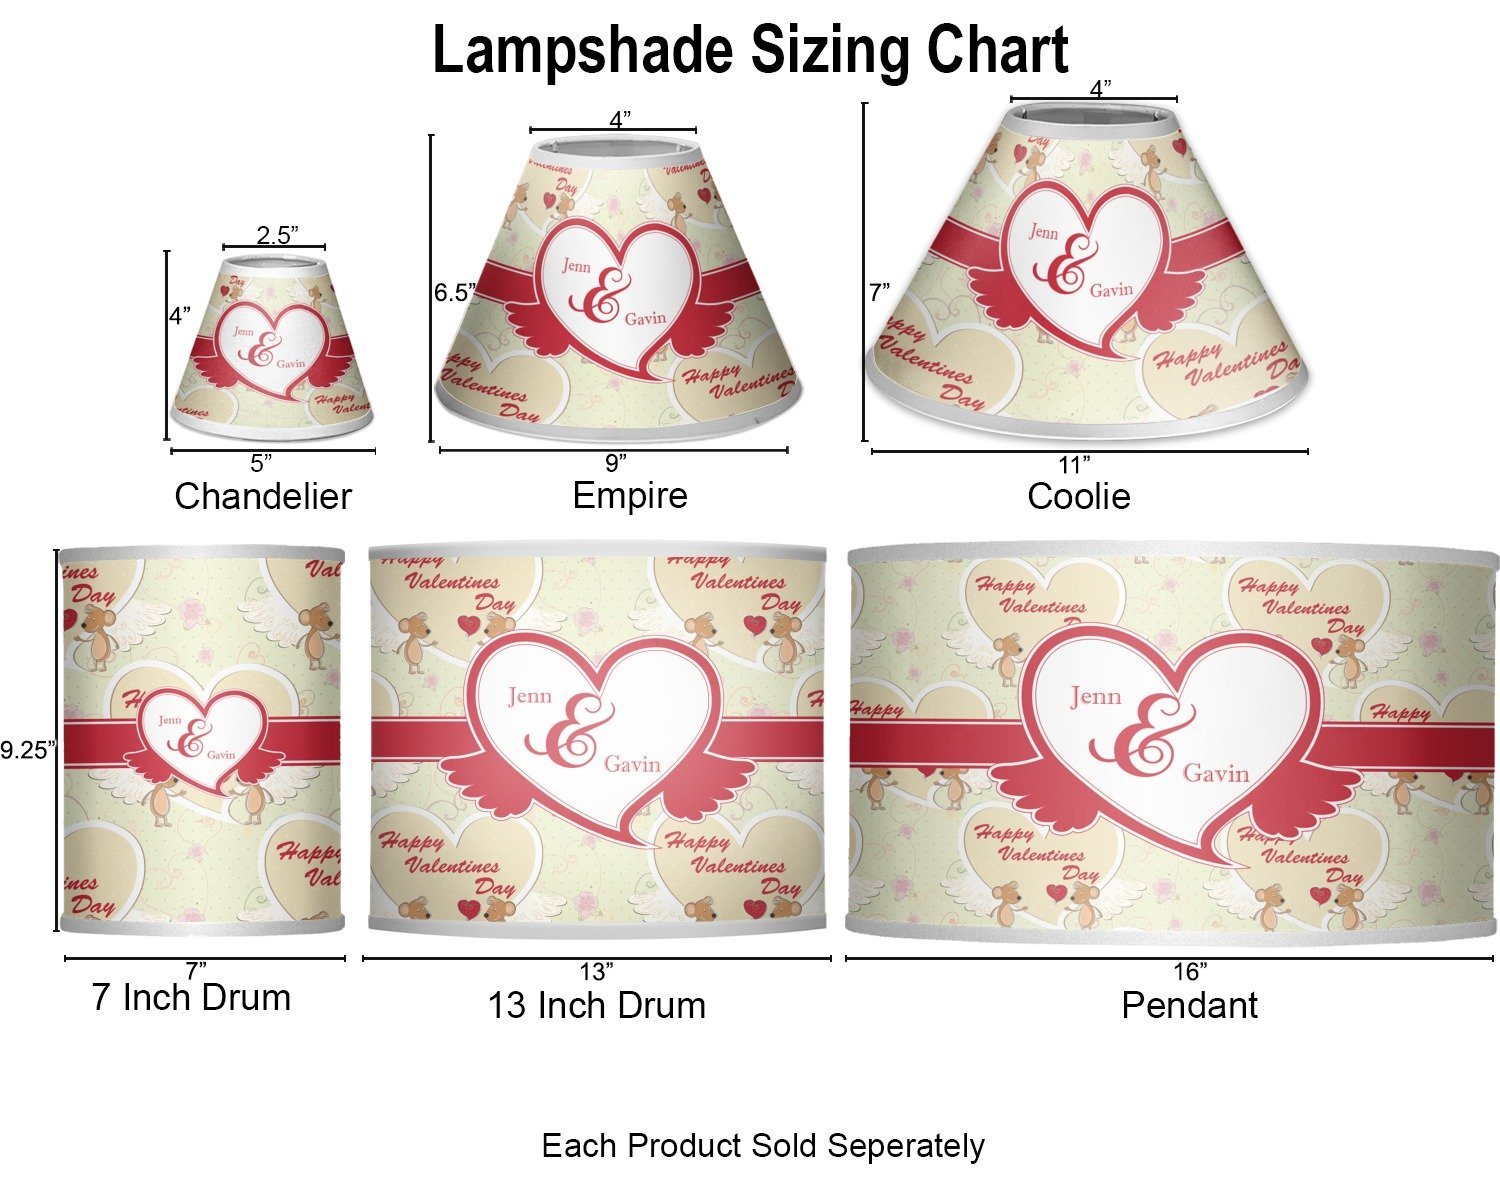 RNK Shops Mouse Love Coolie Lamp Shade (Personalized) by RNK Shops (Image #2)